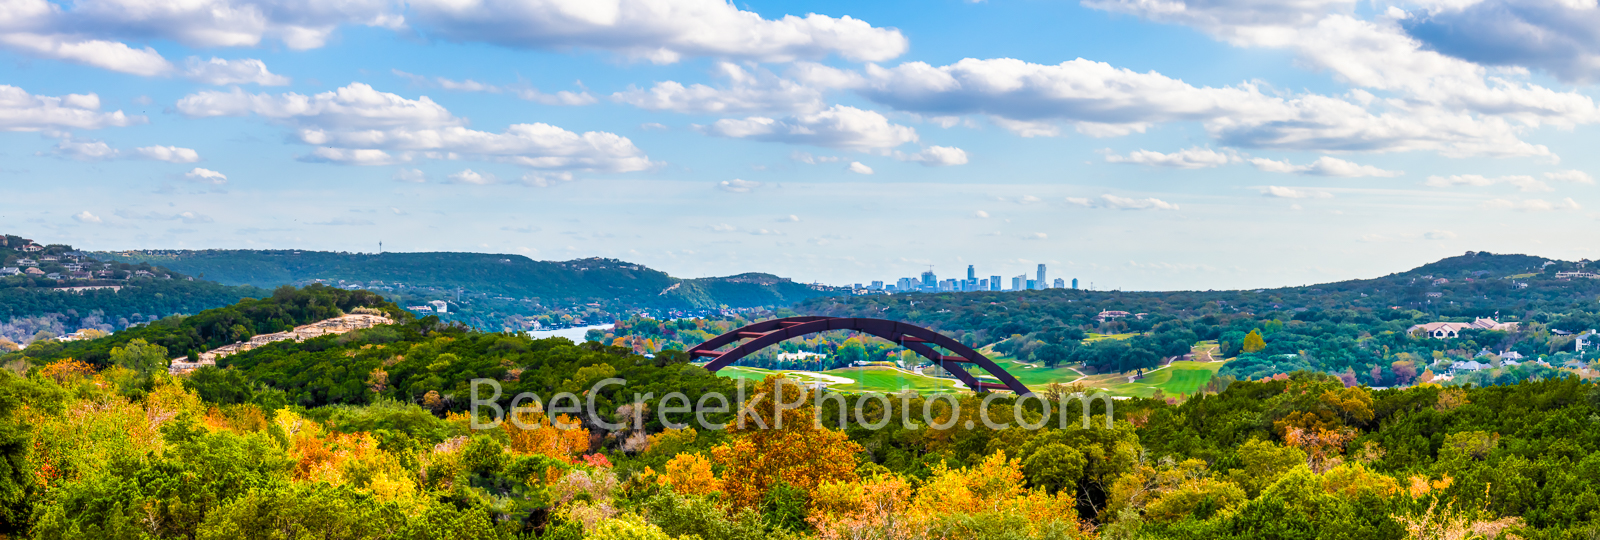 Fall Colors at Pennybacker Bridge Pano - This is another capture of the Austin Pennybacker or Austin 360 bridge panorama with...